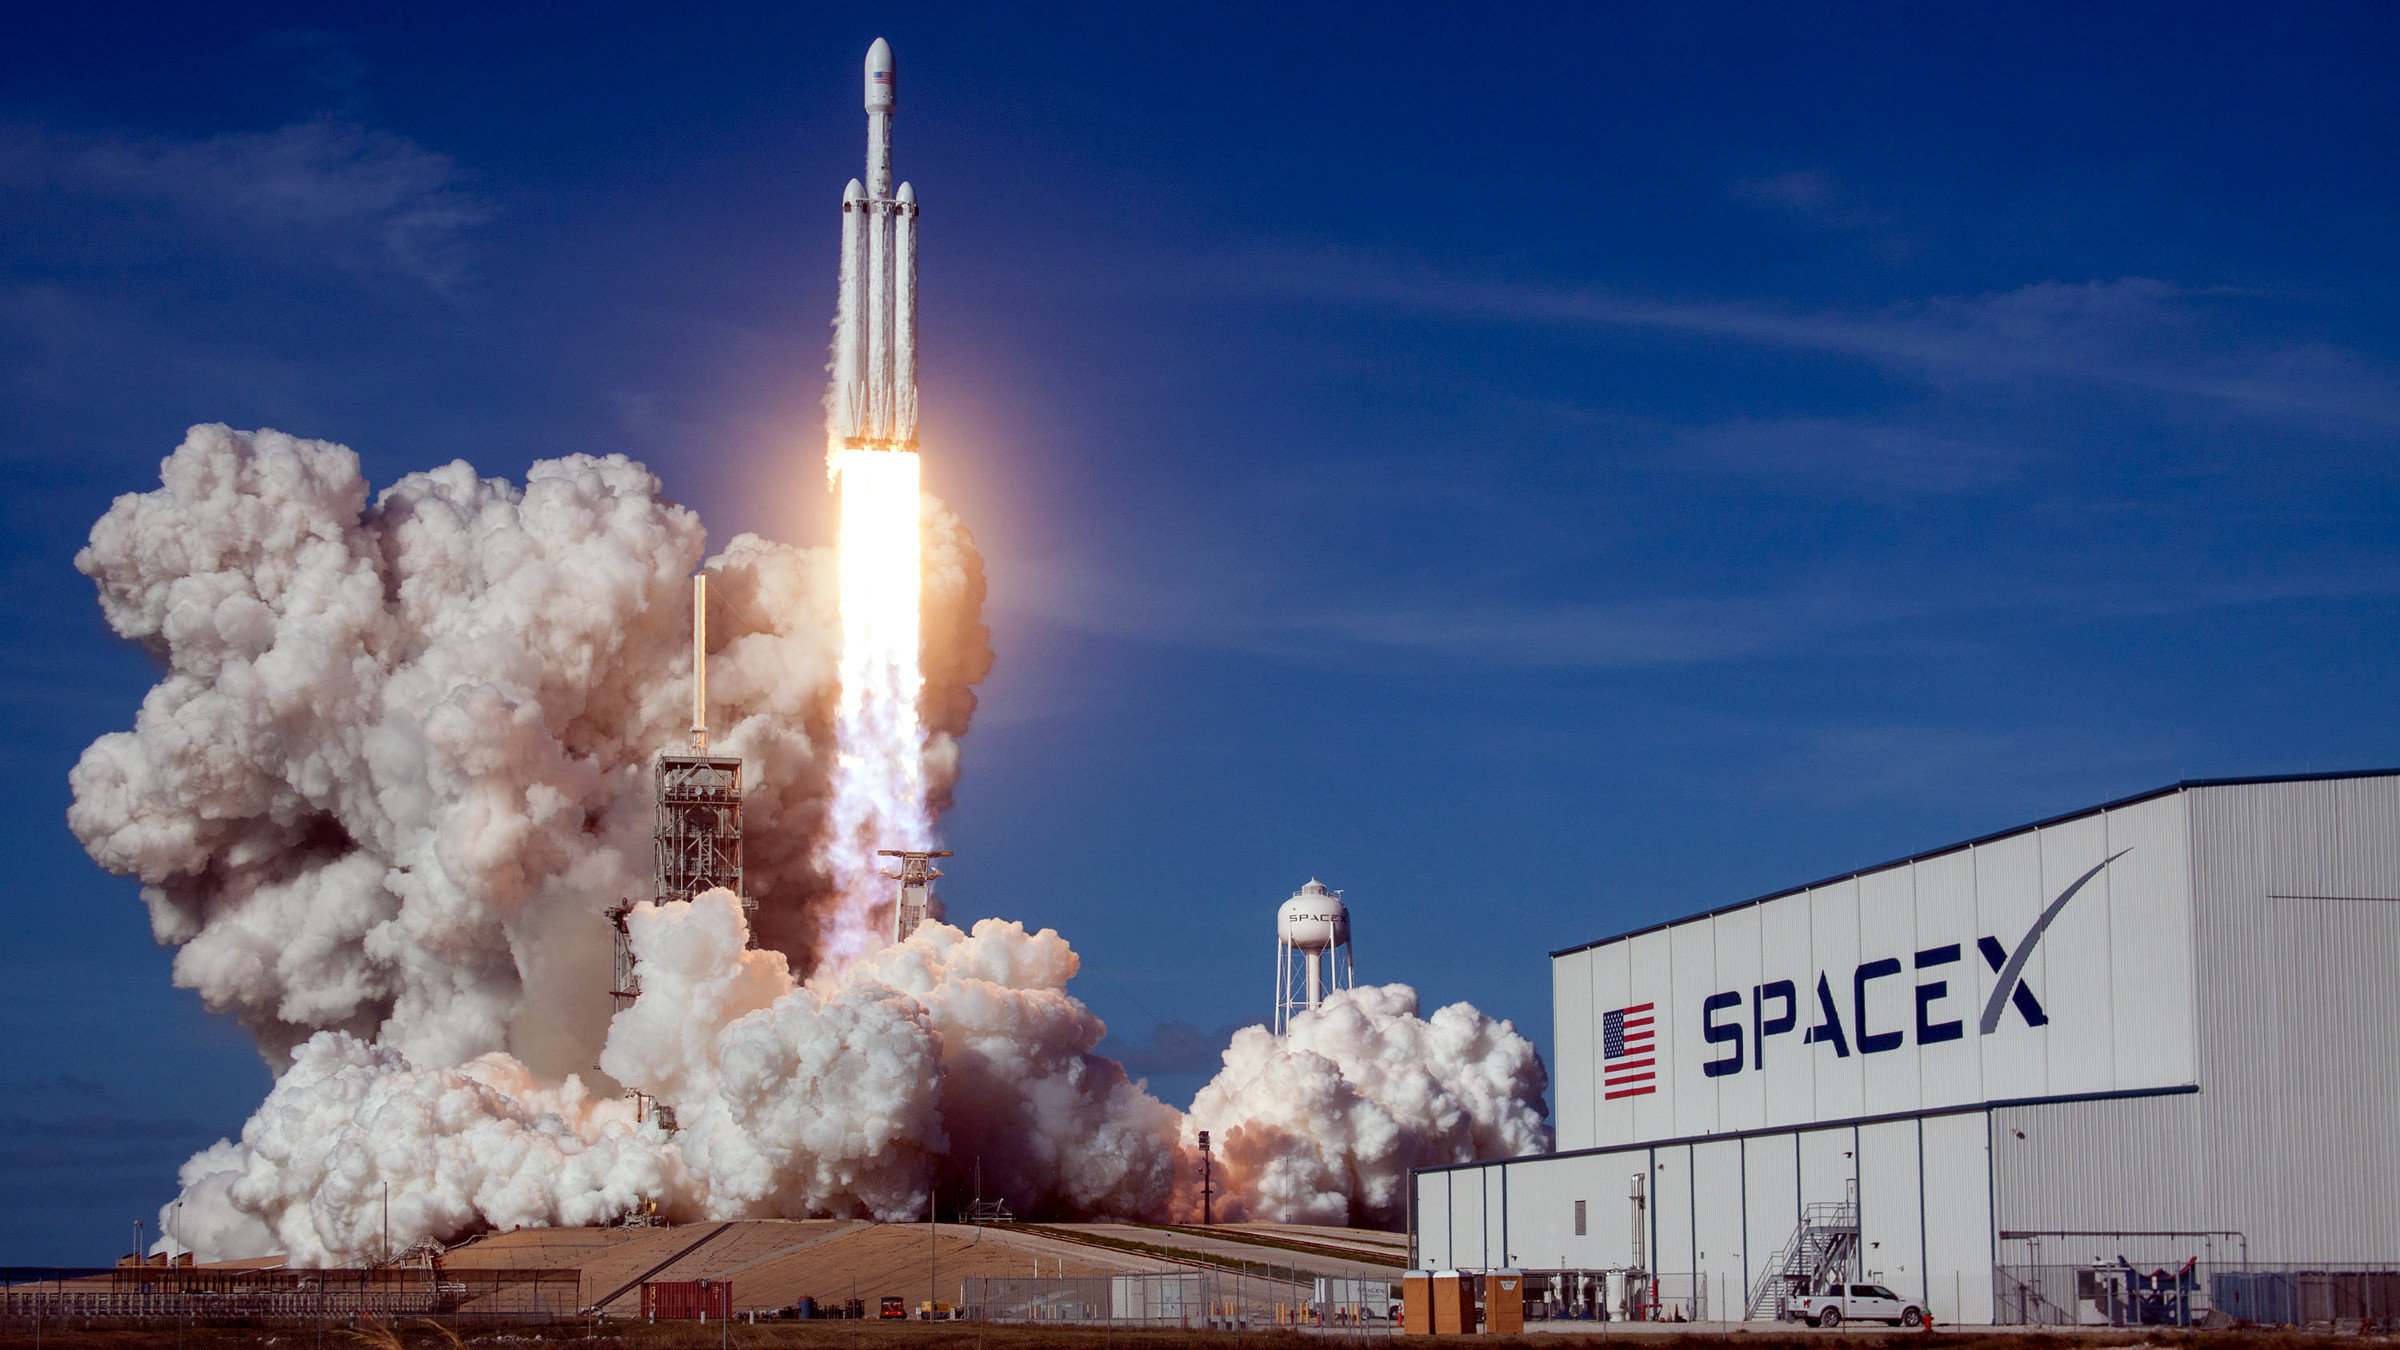 Spacex will launch a rocket with a military satellite